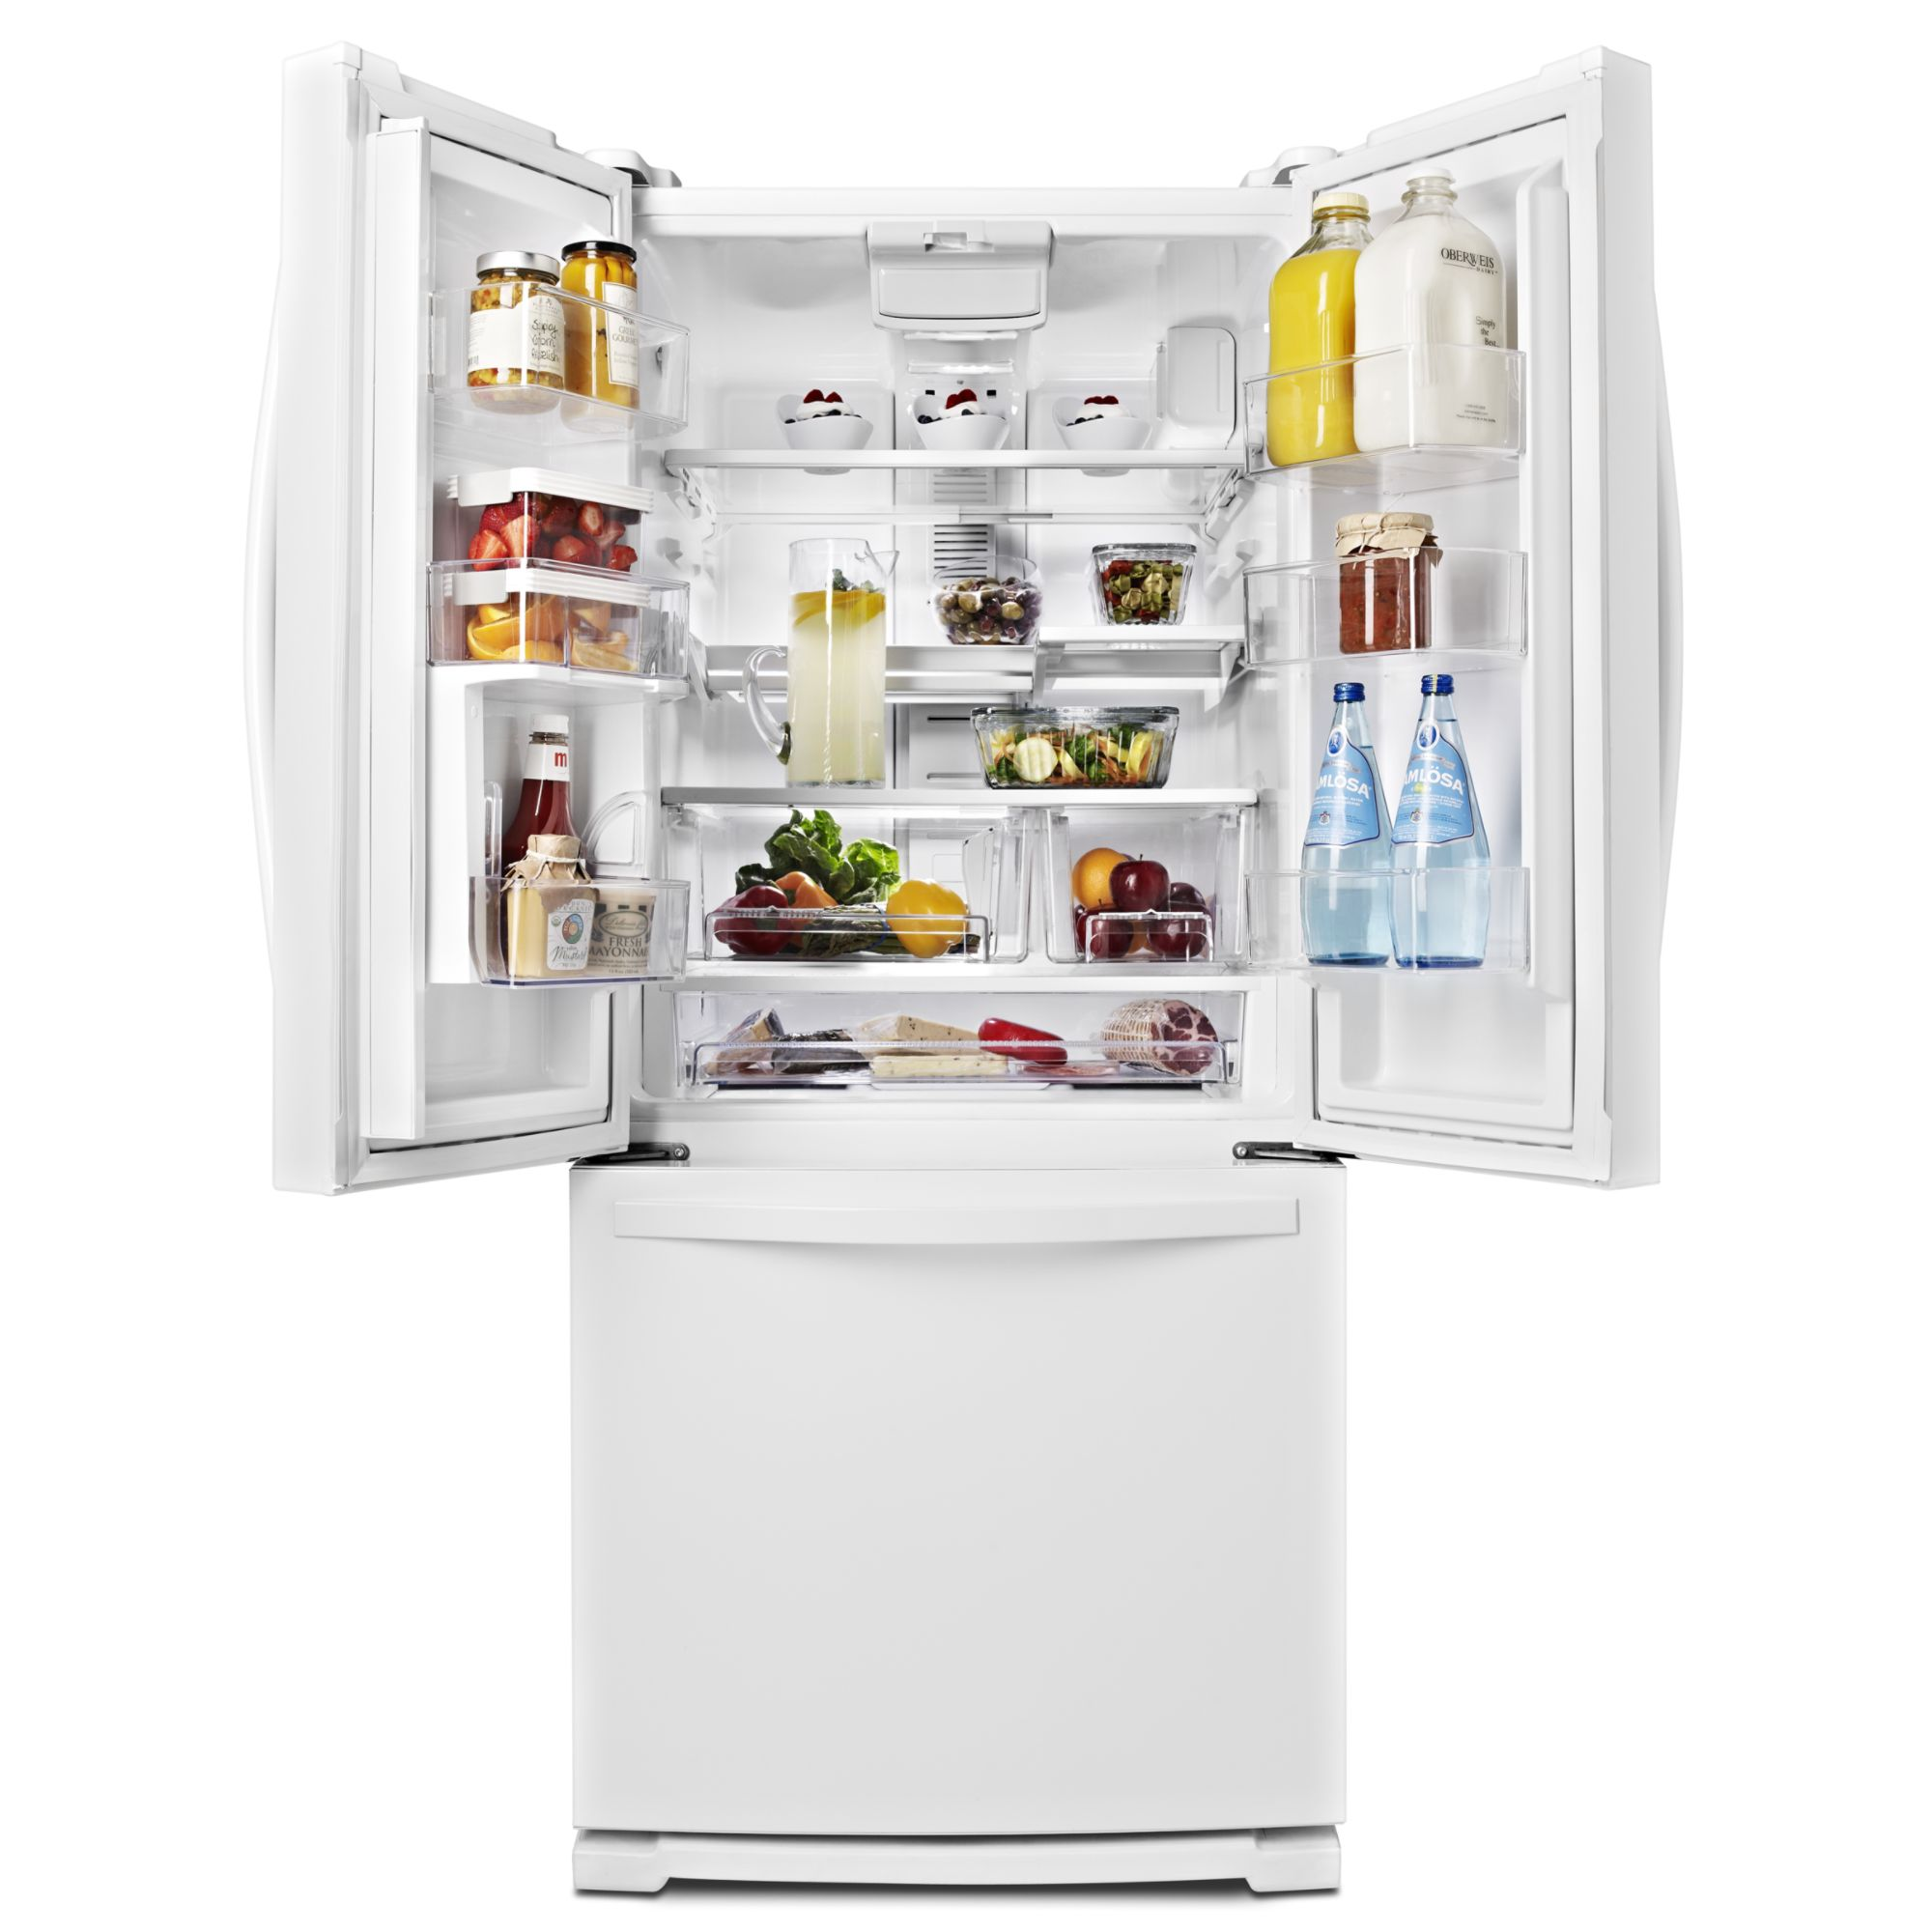 Whirlpool WRF560SEYW 19.7 cu. ft. French Door Refrigerator w/ Exterior Dispenser - White